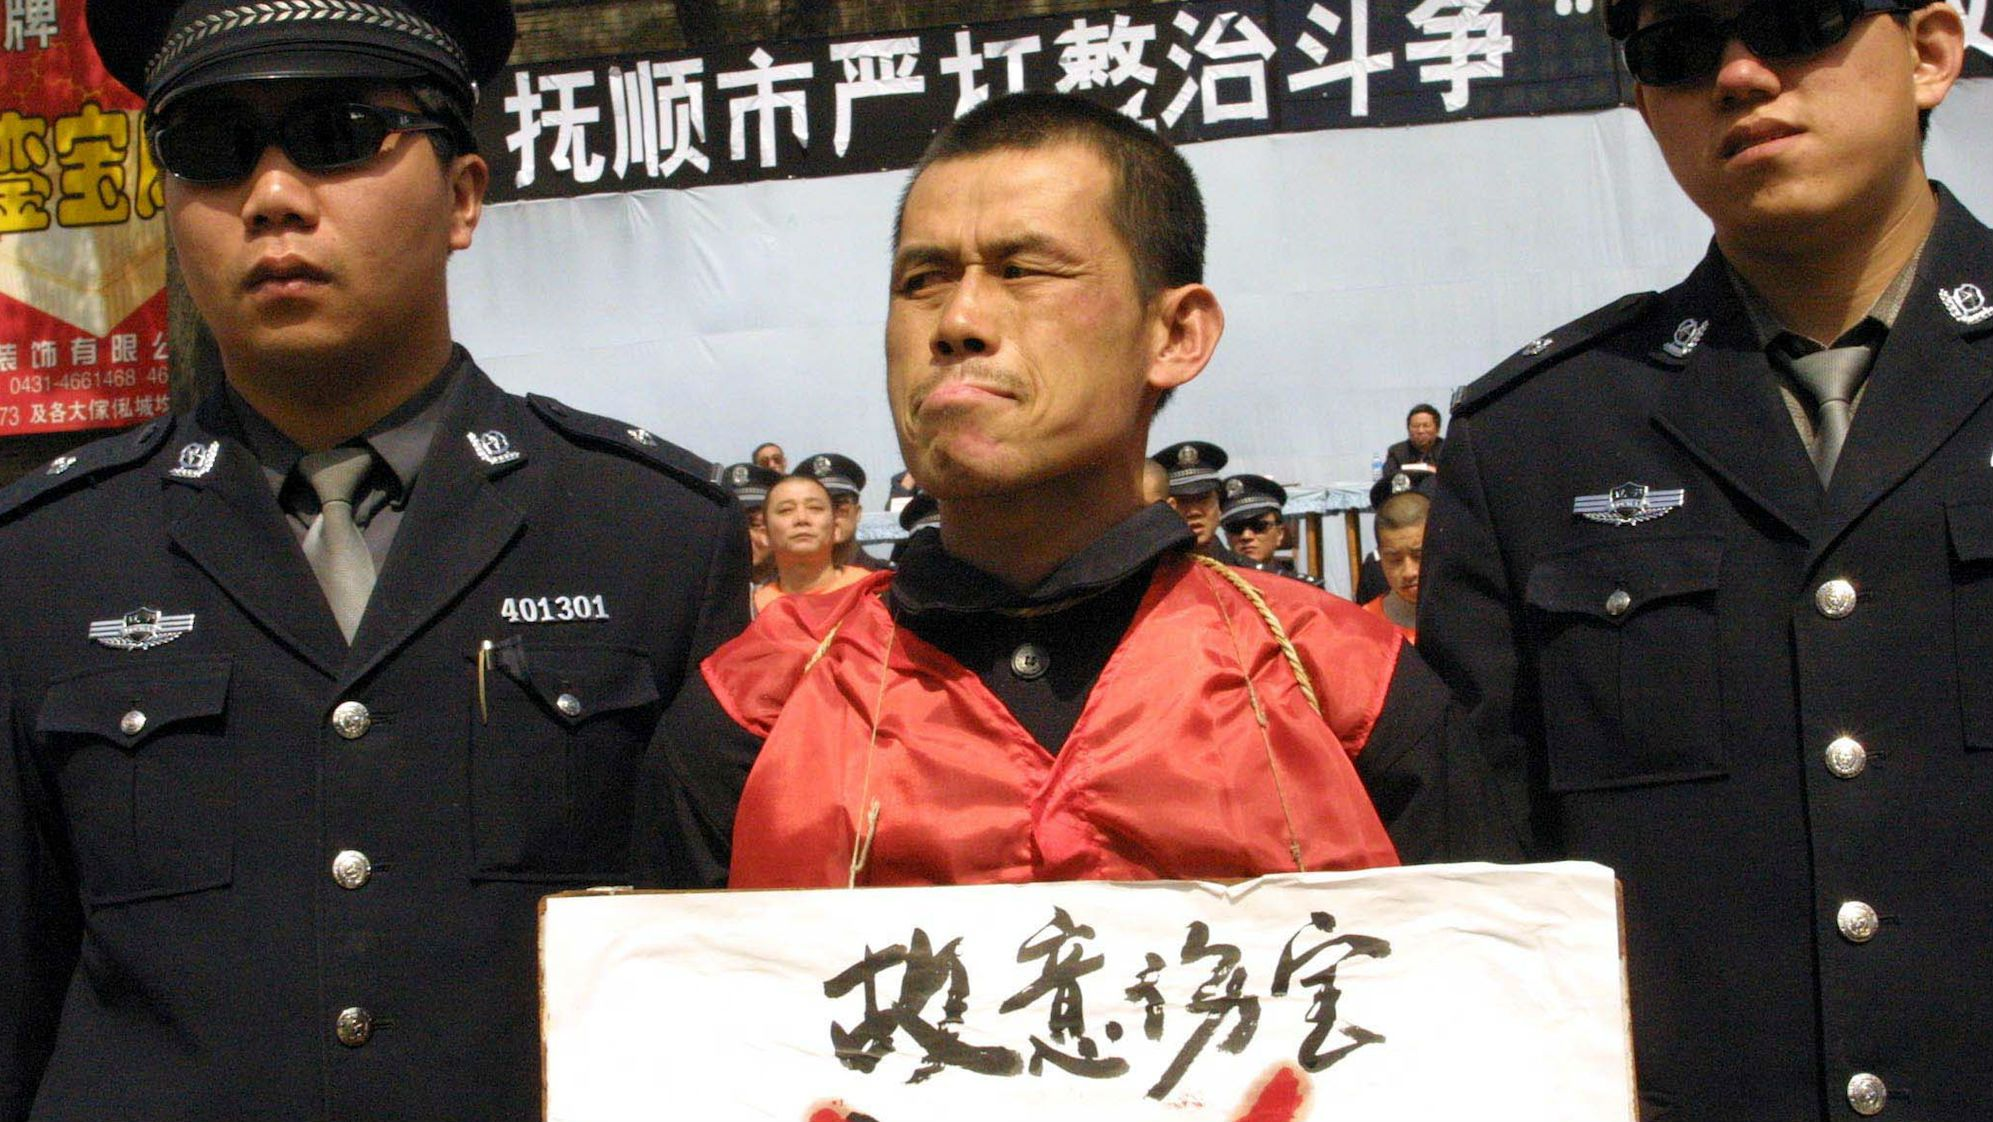 China pledges to stop harvesting organs from inmates.